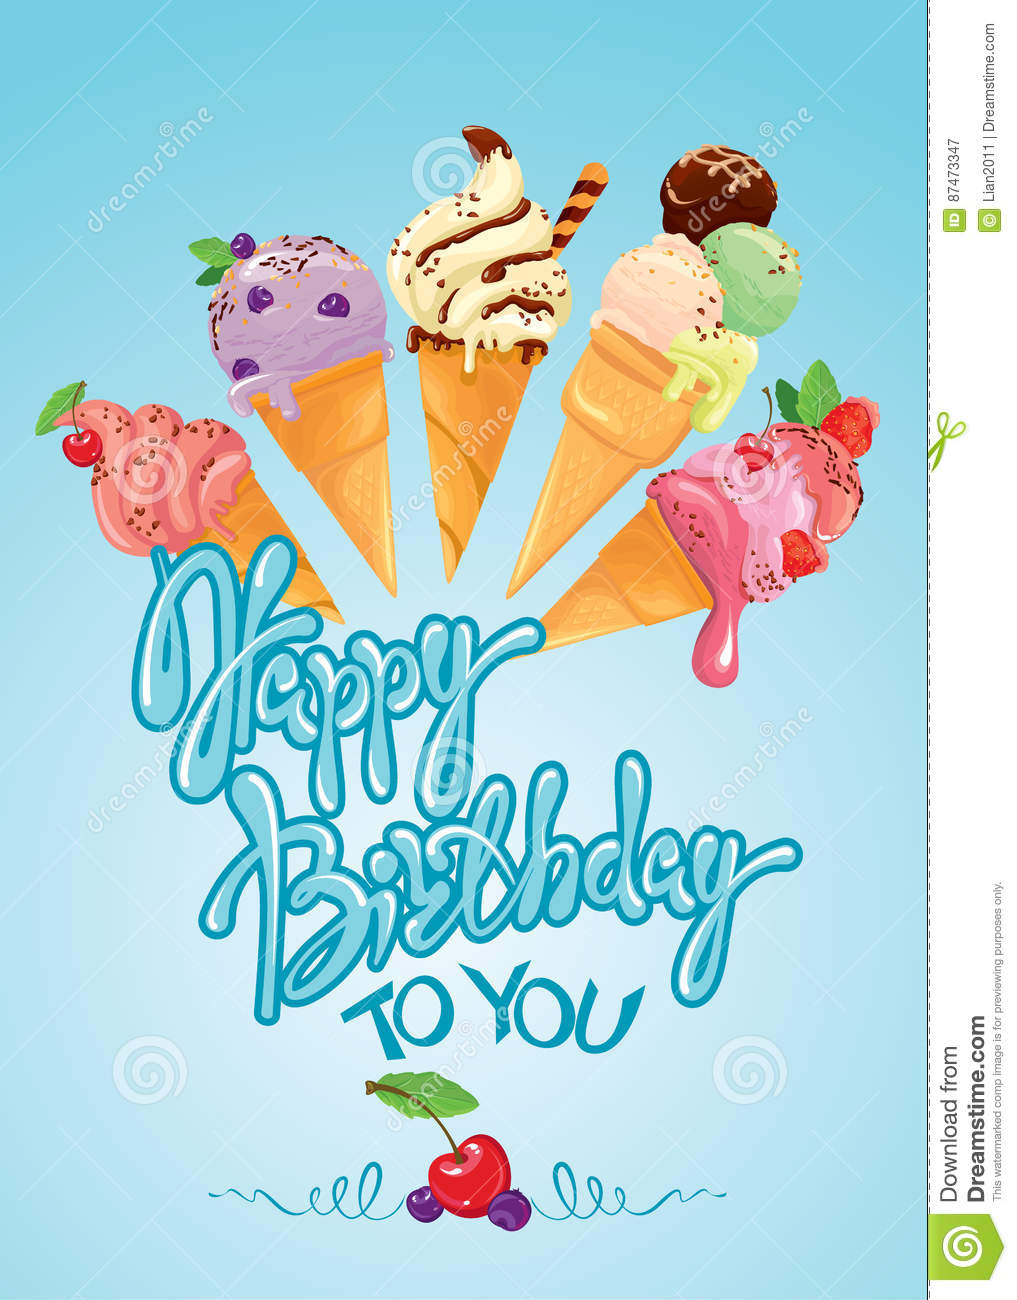 Awesome Greeting Card With Ice Cream Cones On Blue Background Funny Birthday Cards Online Barepcheapnameinfo